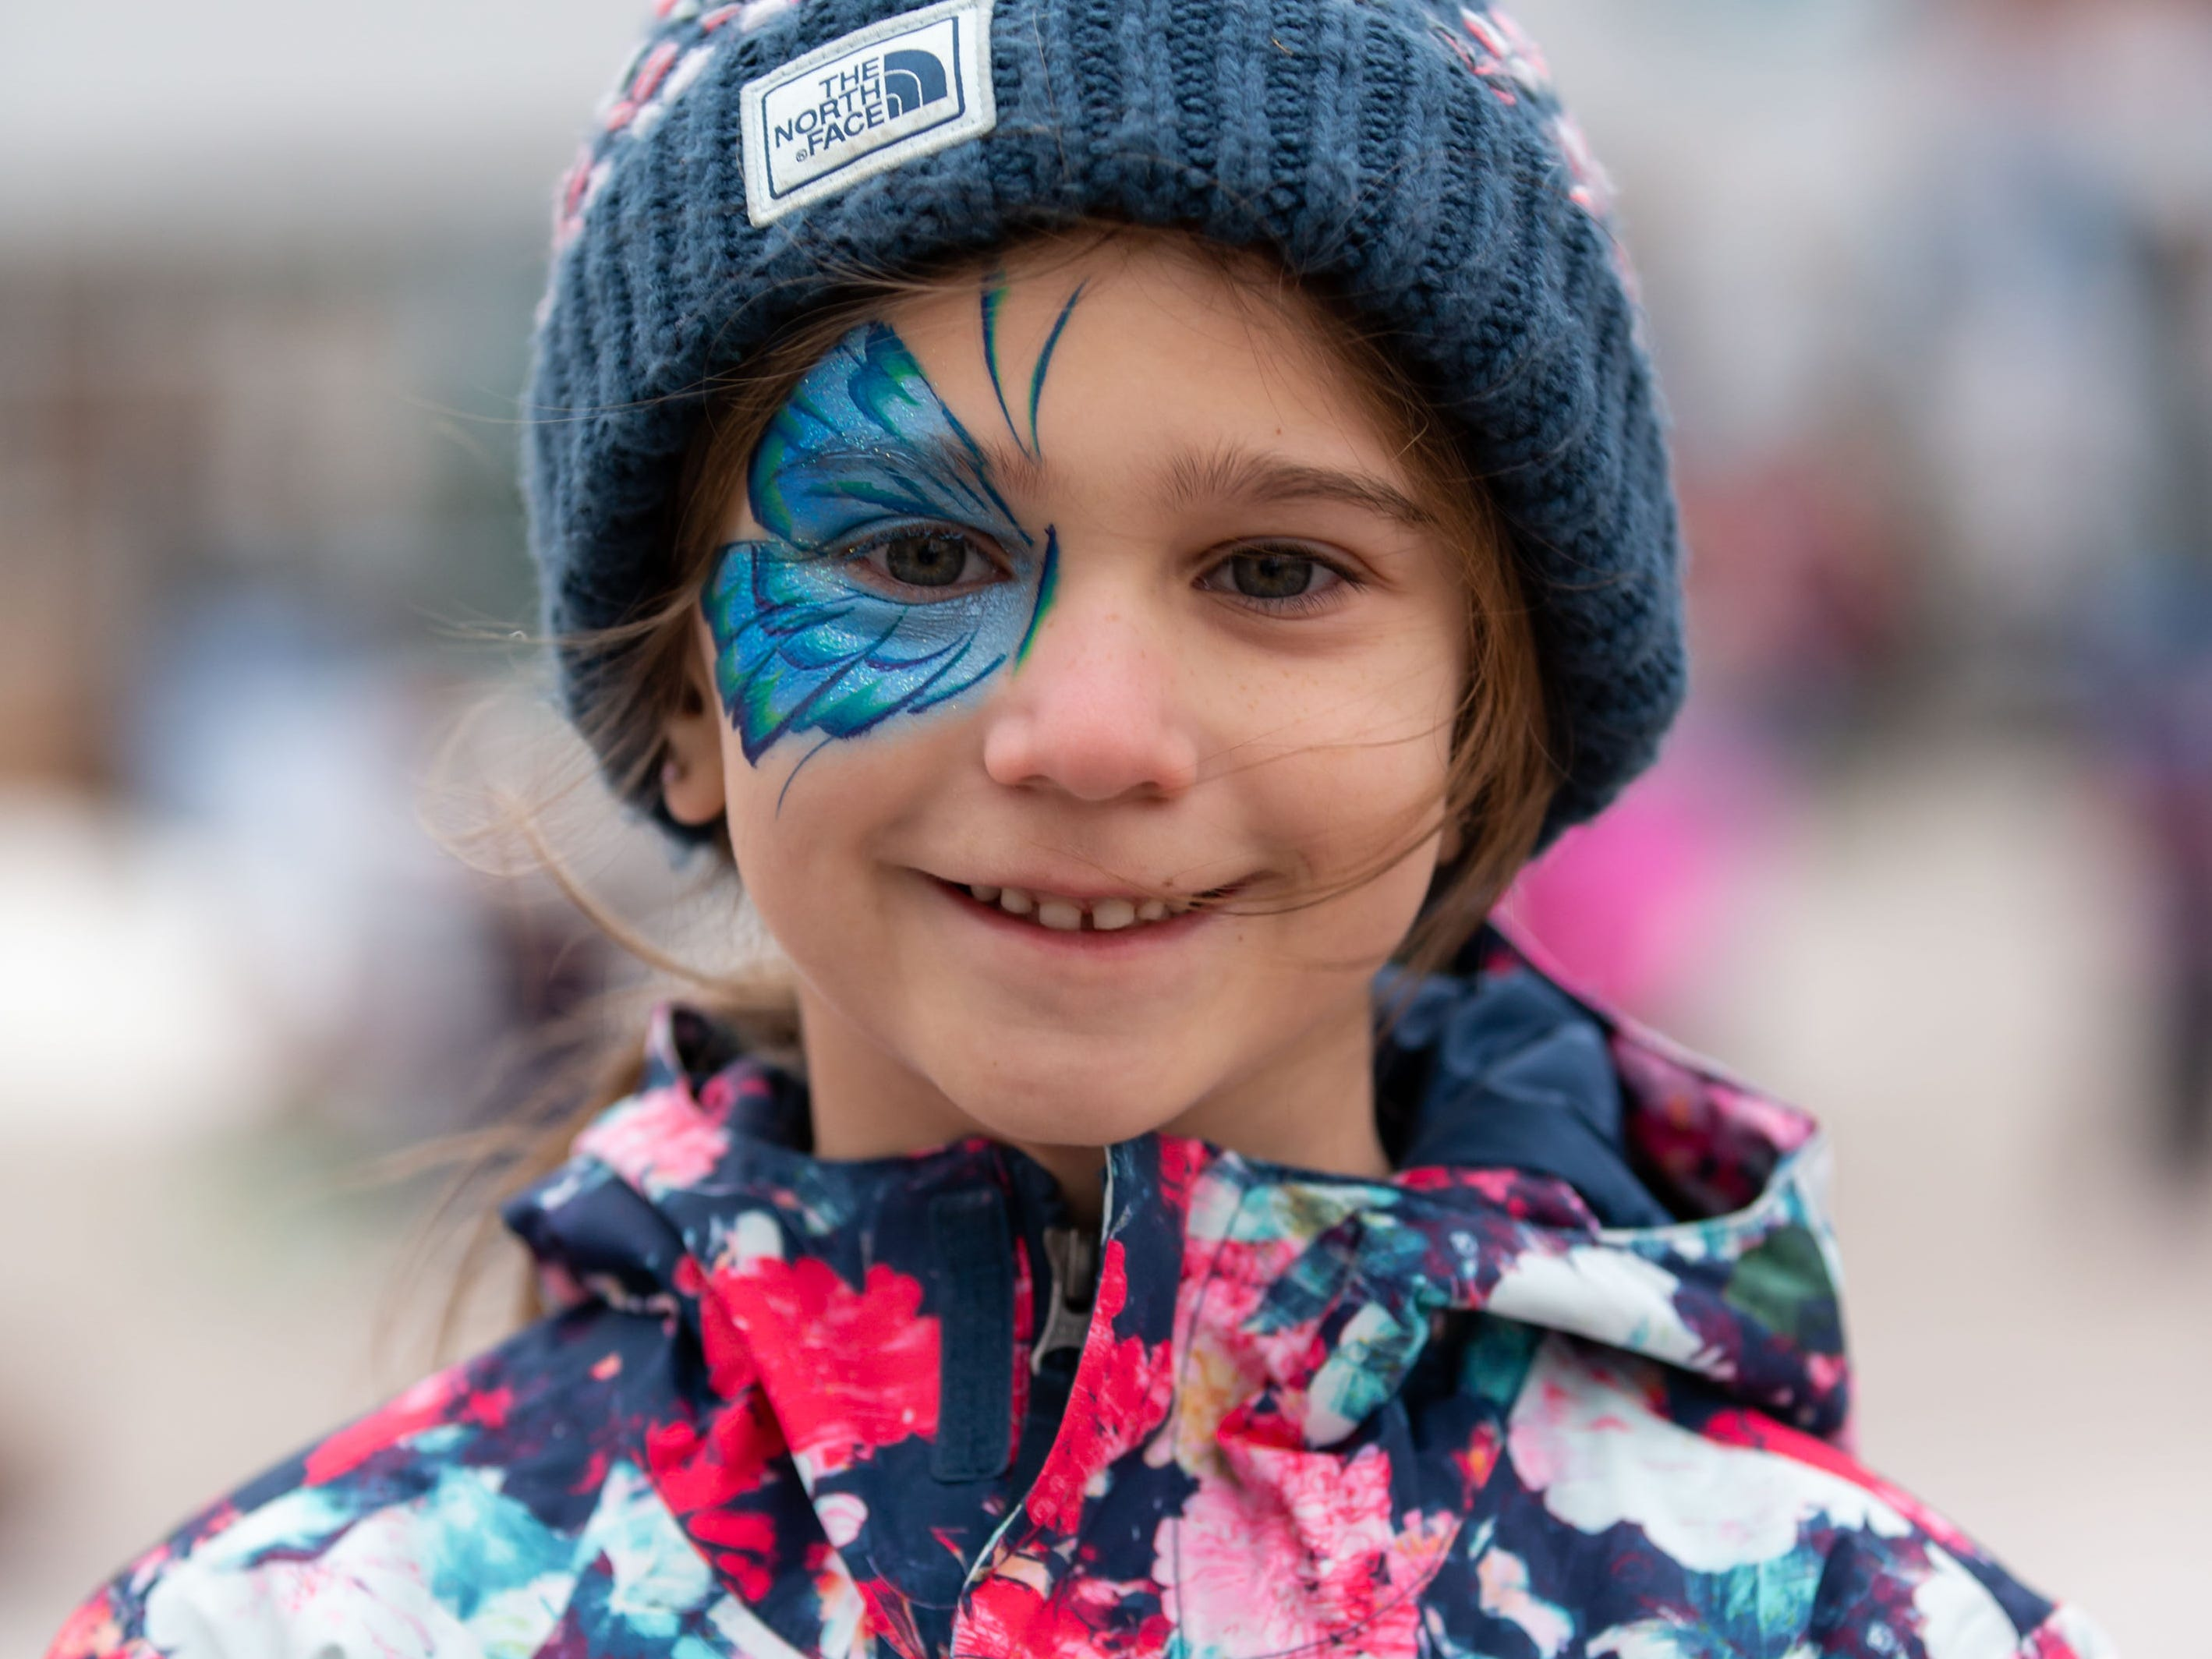 """Arden Wiedmeyer, 7, of Menomonee Falls sat for a face painting during Winter Fest at The Corners of Brookfield on Saturday, Jan. 12, 2019. The event included the Wisconsin State Ice Carving Championships, a screening of the movie """"Frozen"""", face painting, a caricature artist and much more."""